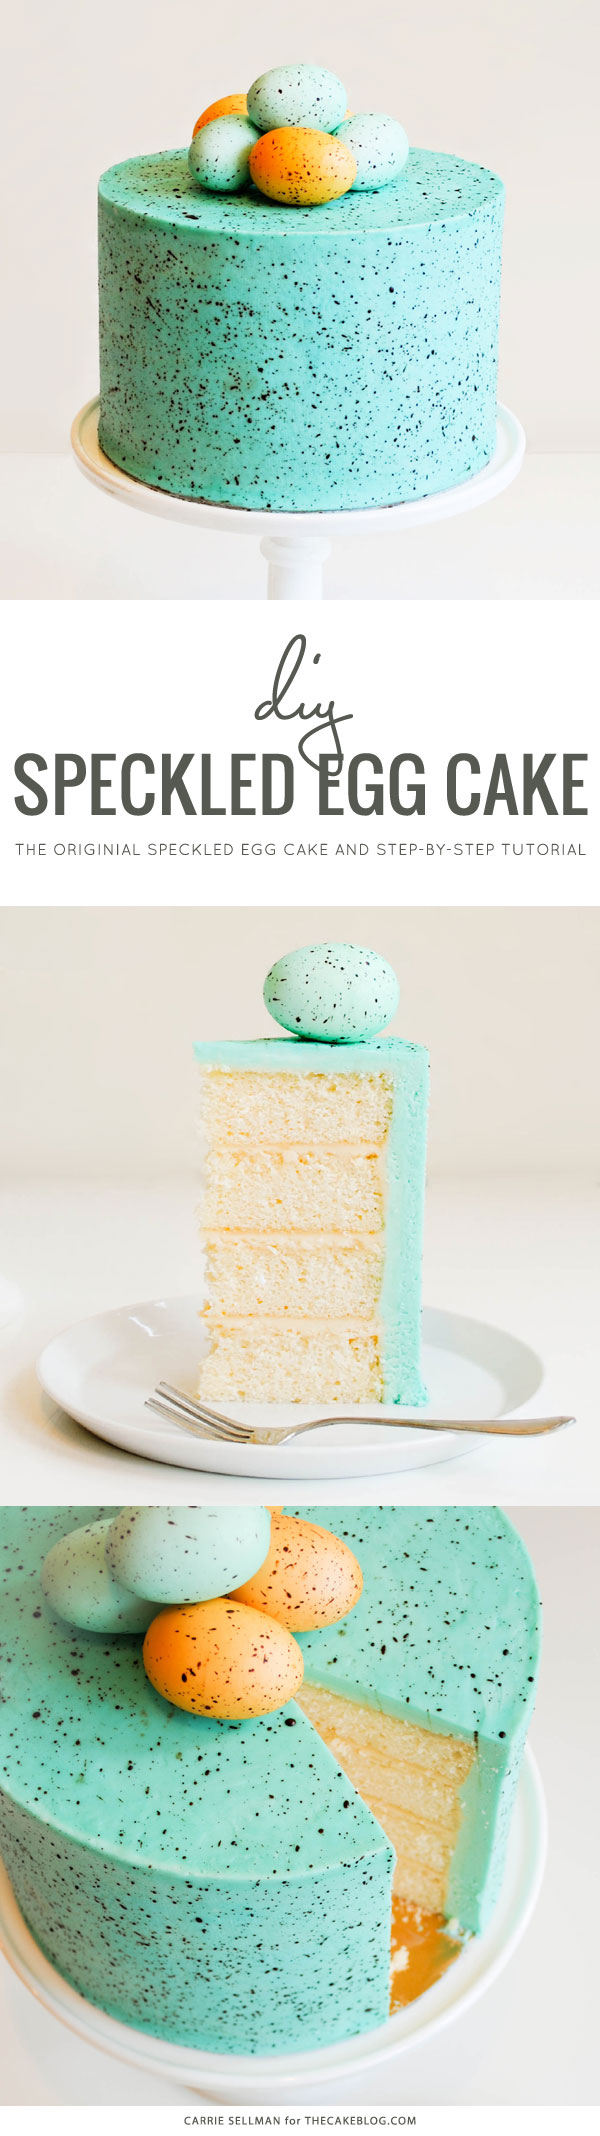 The original Speckled Egg Cake! Learn how to make this springy Easter cake with a step-by-step tutorial | by Carrie Sellman for TheCakeBlog.com